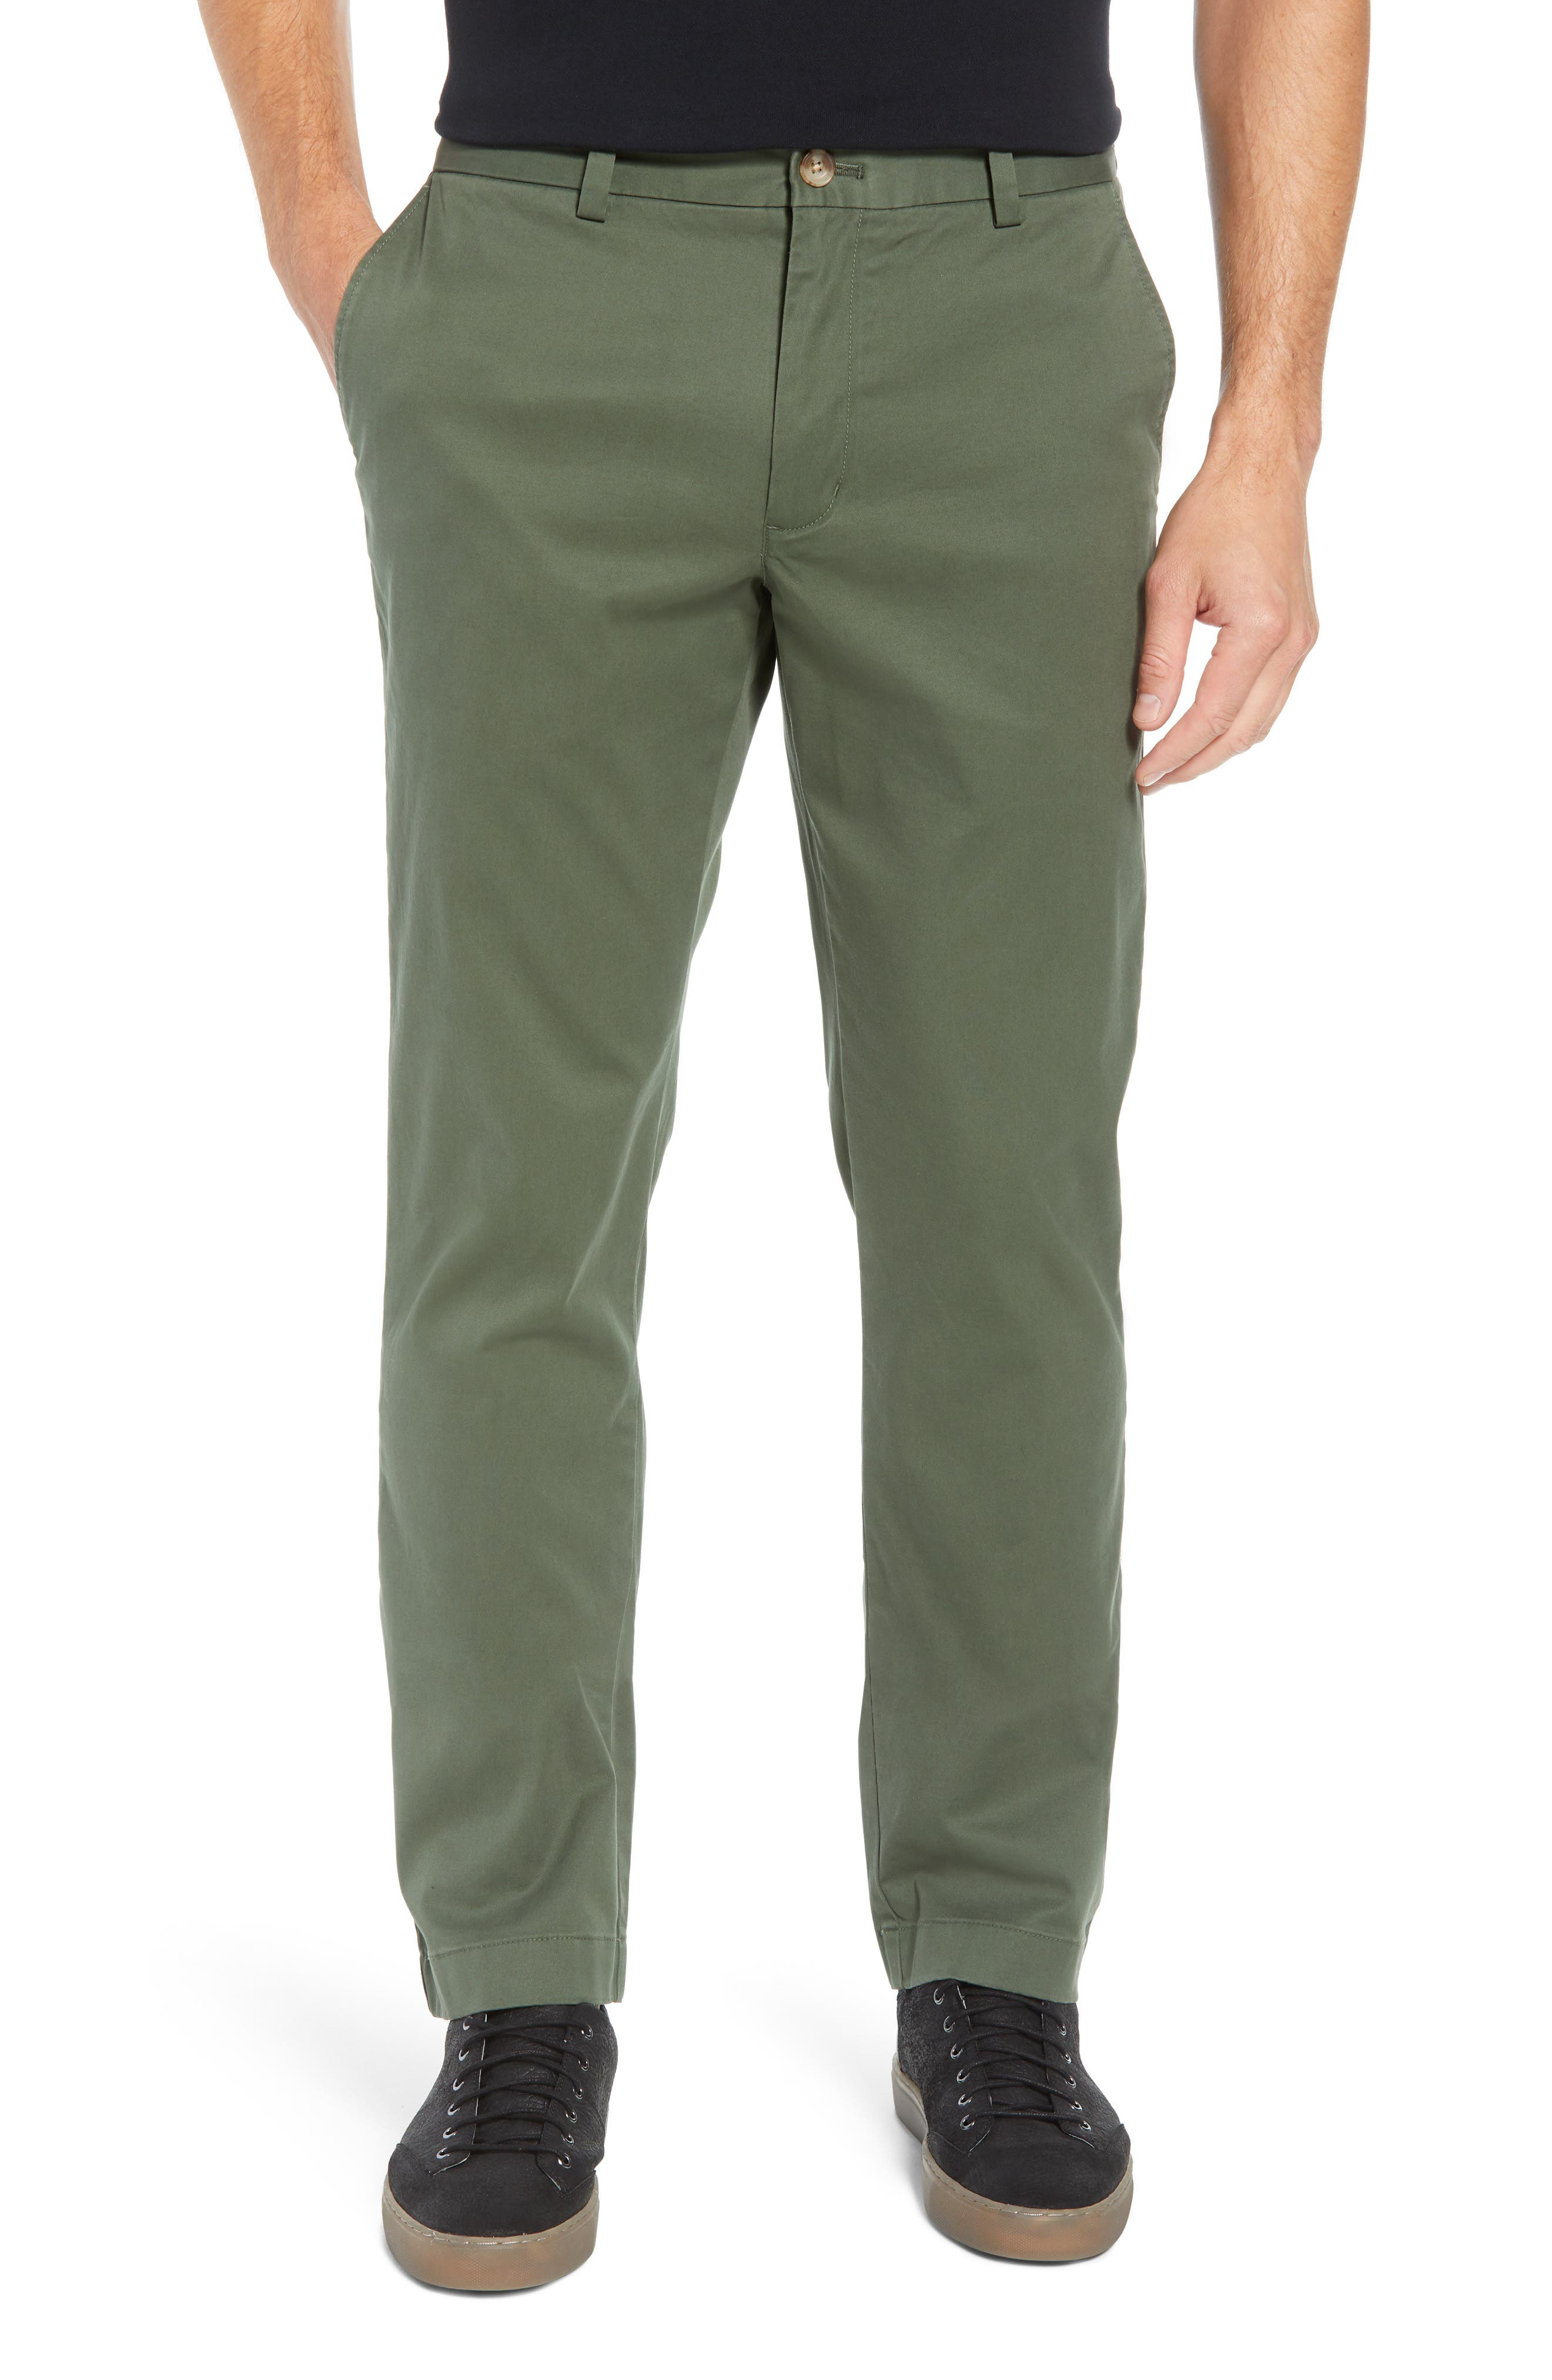 Breaker Flat Front Stretch Cotton Pants,                             Main thumbnail 1, color,                             CARGO GREEN